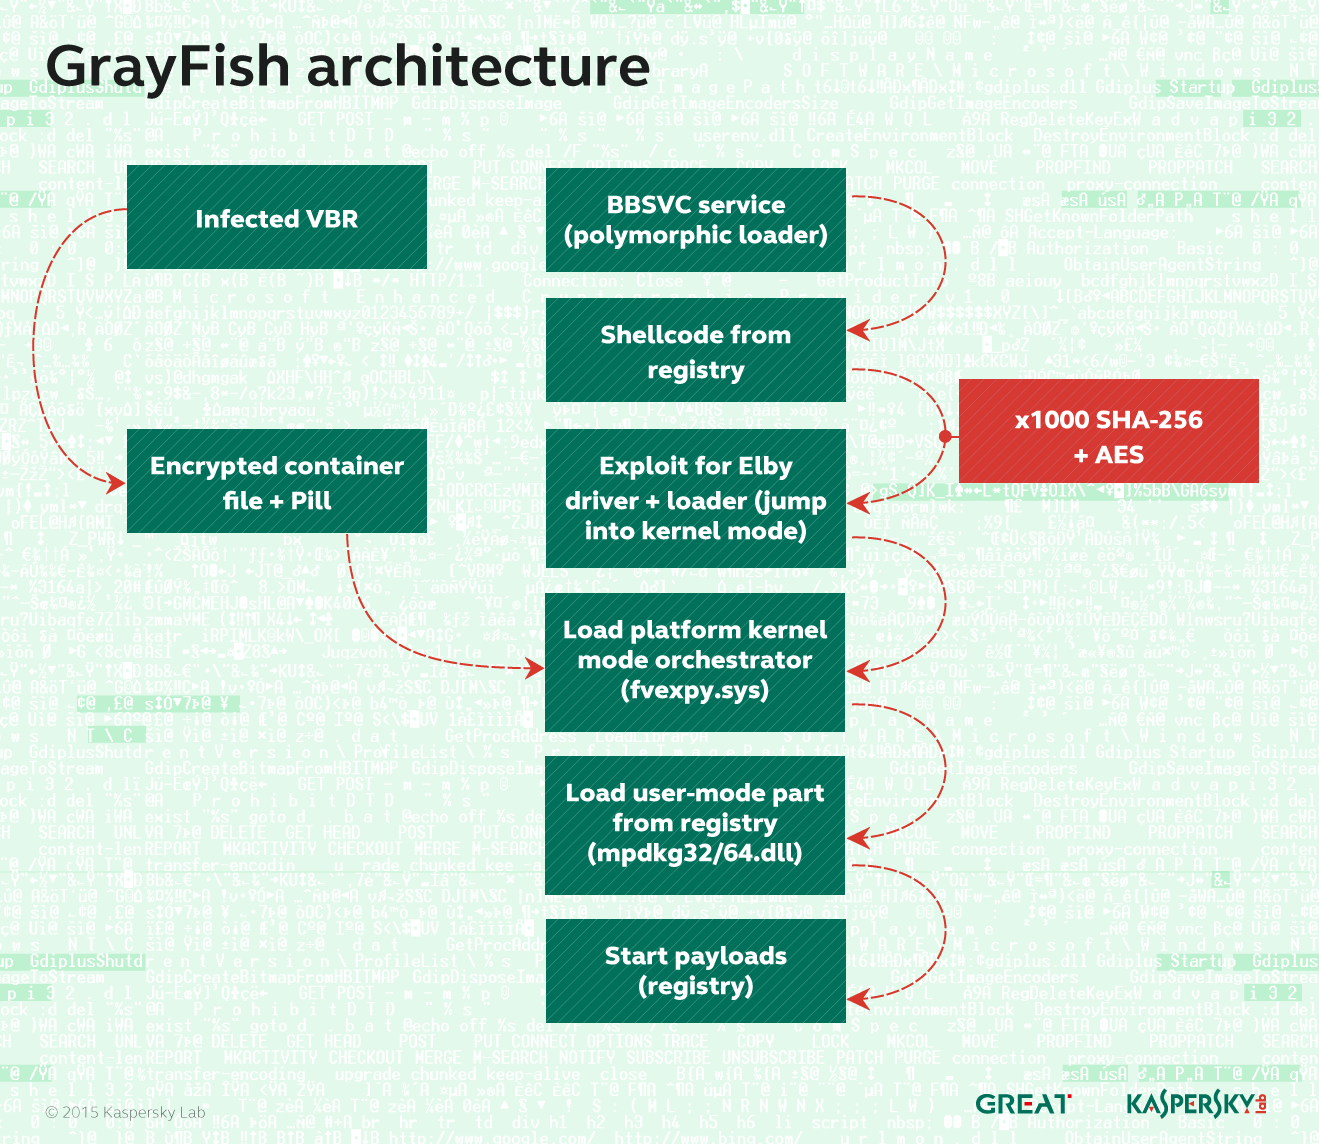 GrayFish architecture - Kaspersky Labs